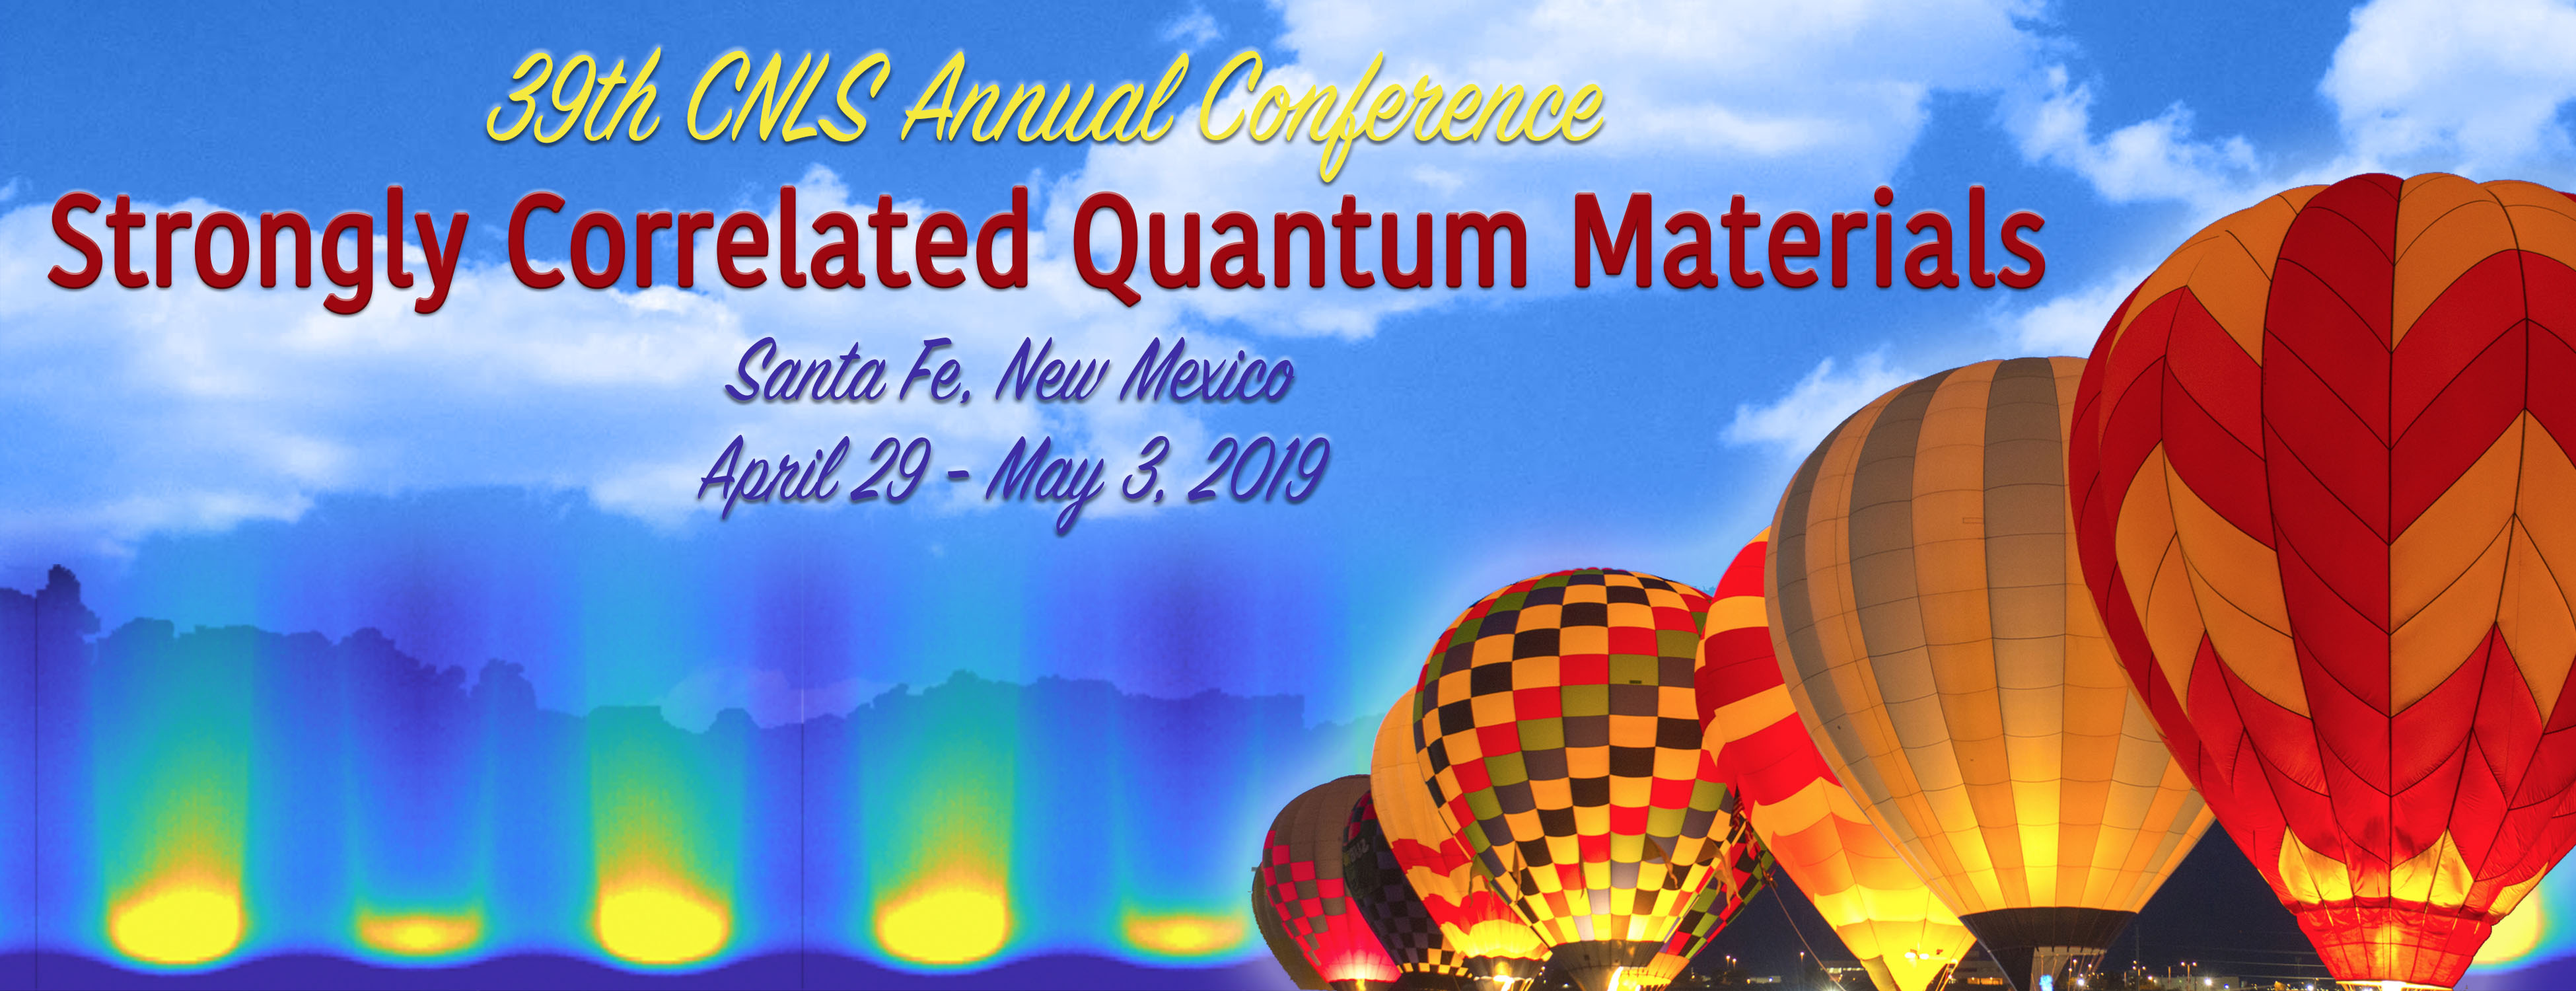 CNLS 39th Annual Conference - Strongly Correlated Quantum Materials